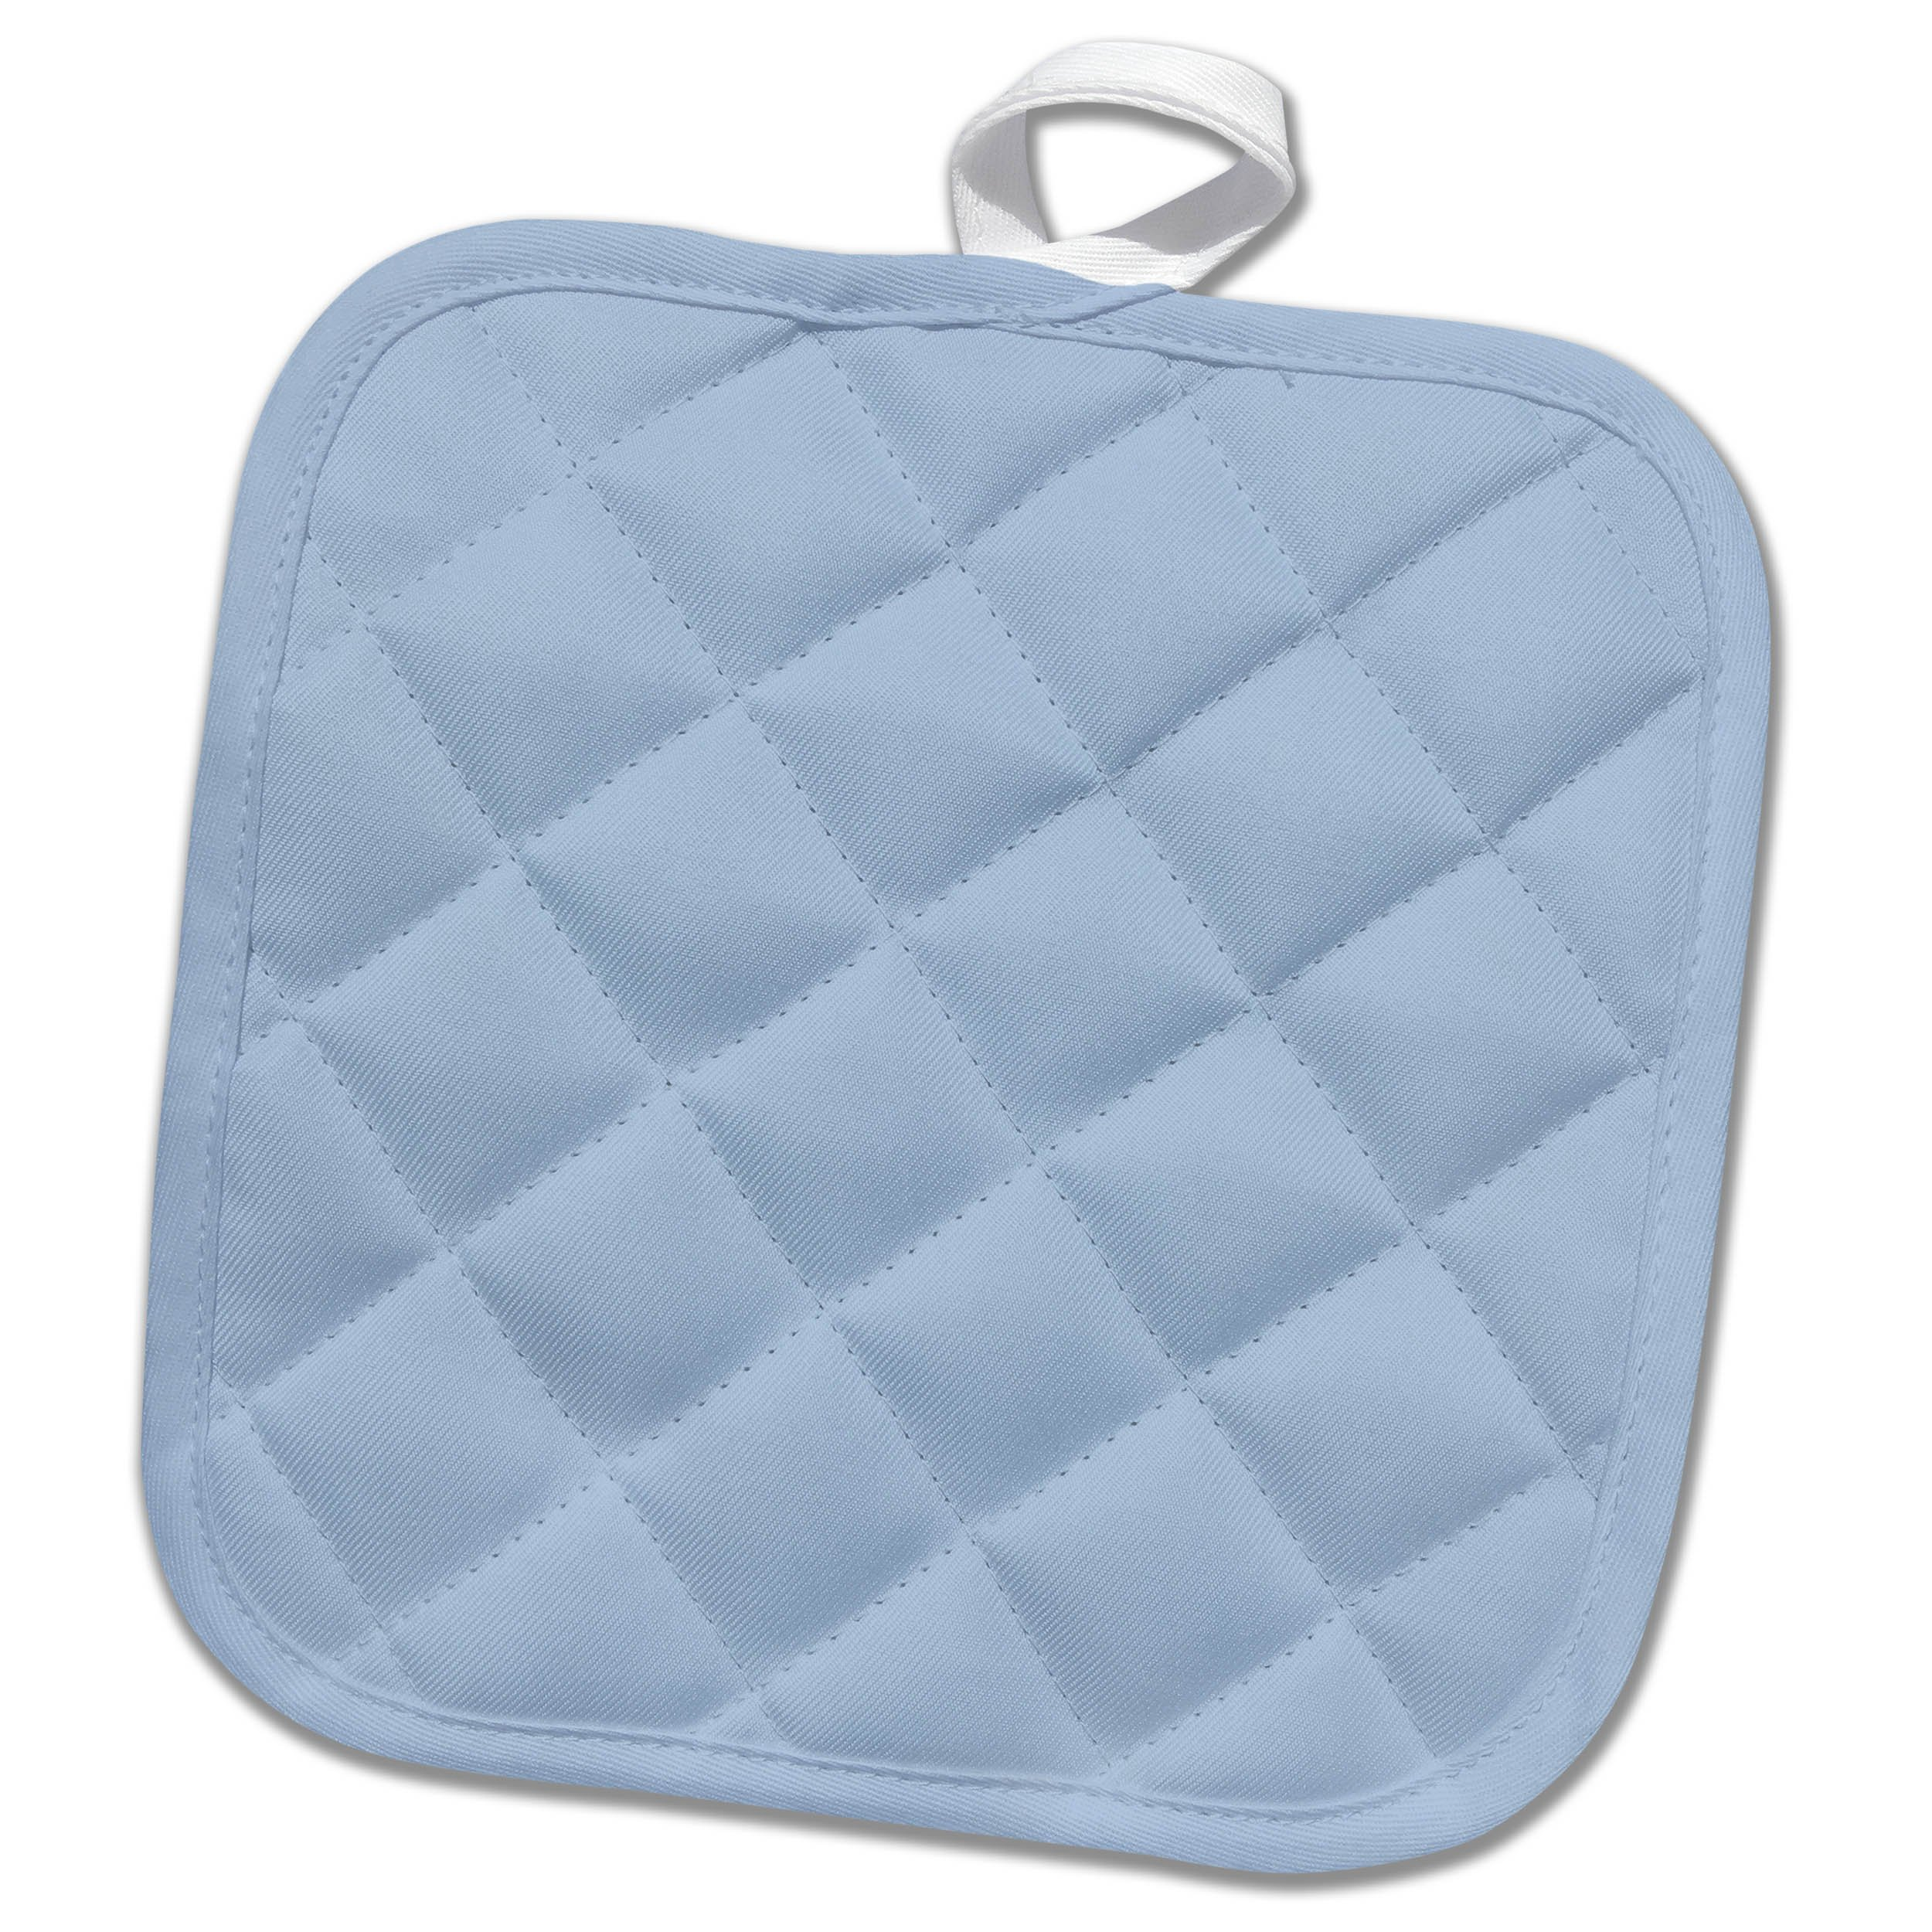 3dRose Kultjers Colors - Color light steel blue - 8x8 Potholder (phl_284796_1)